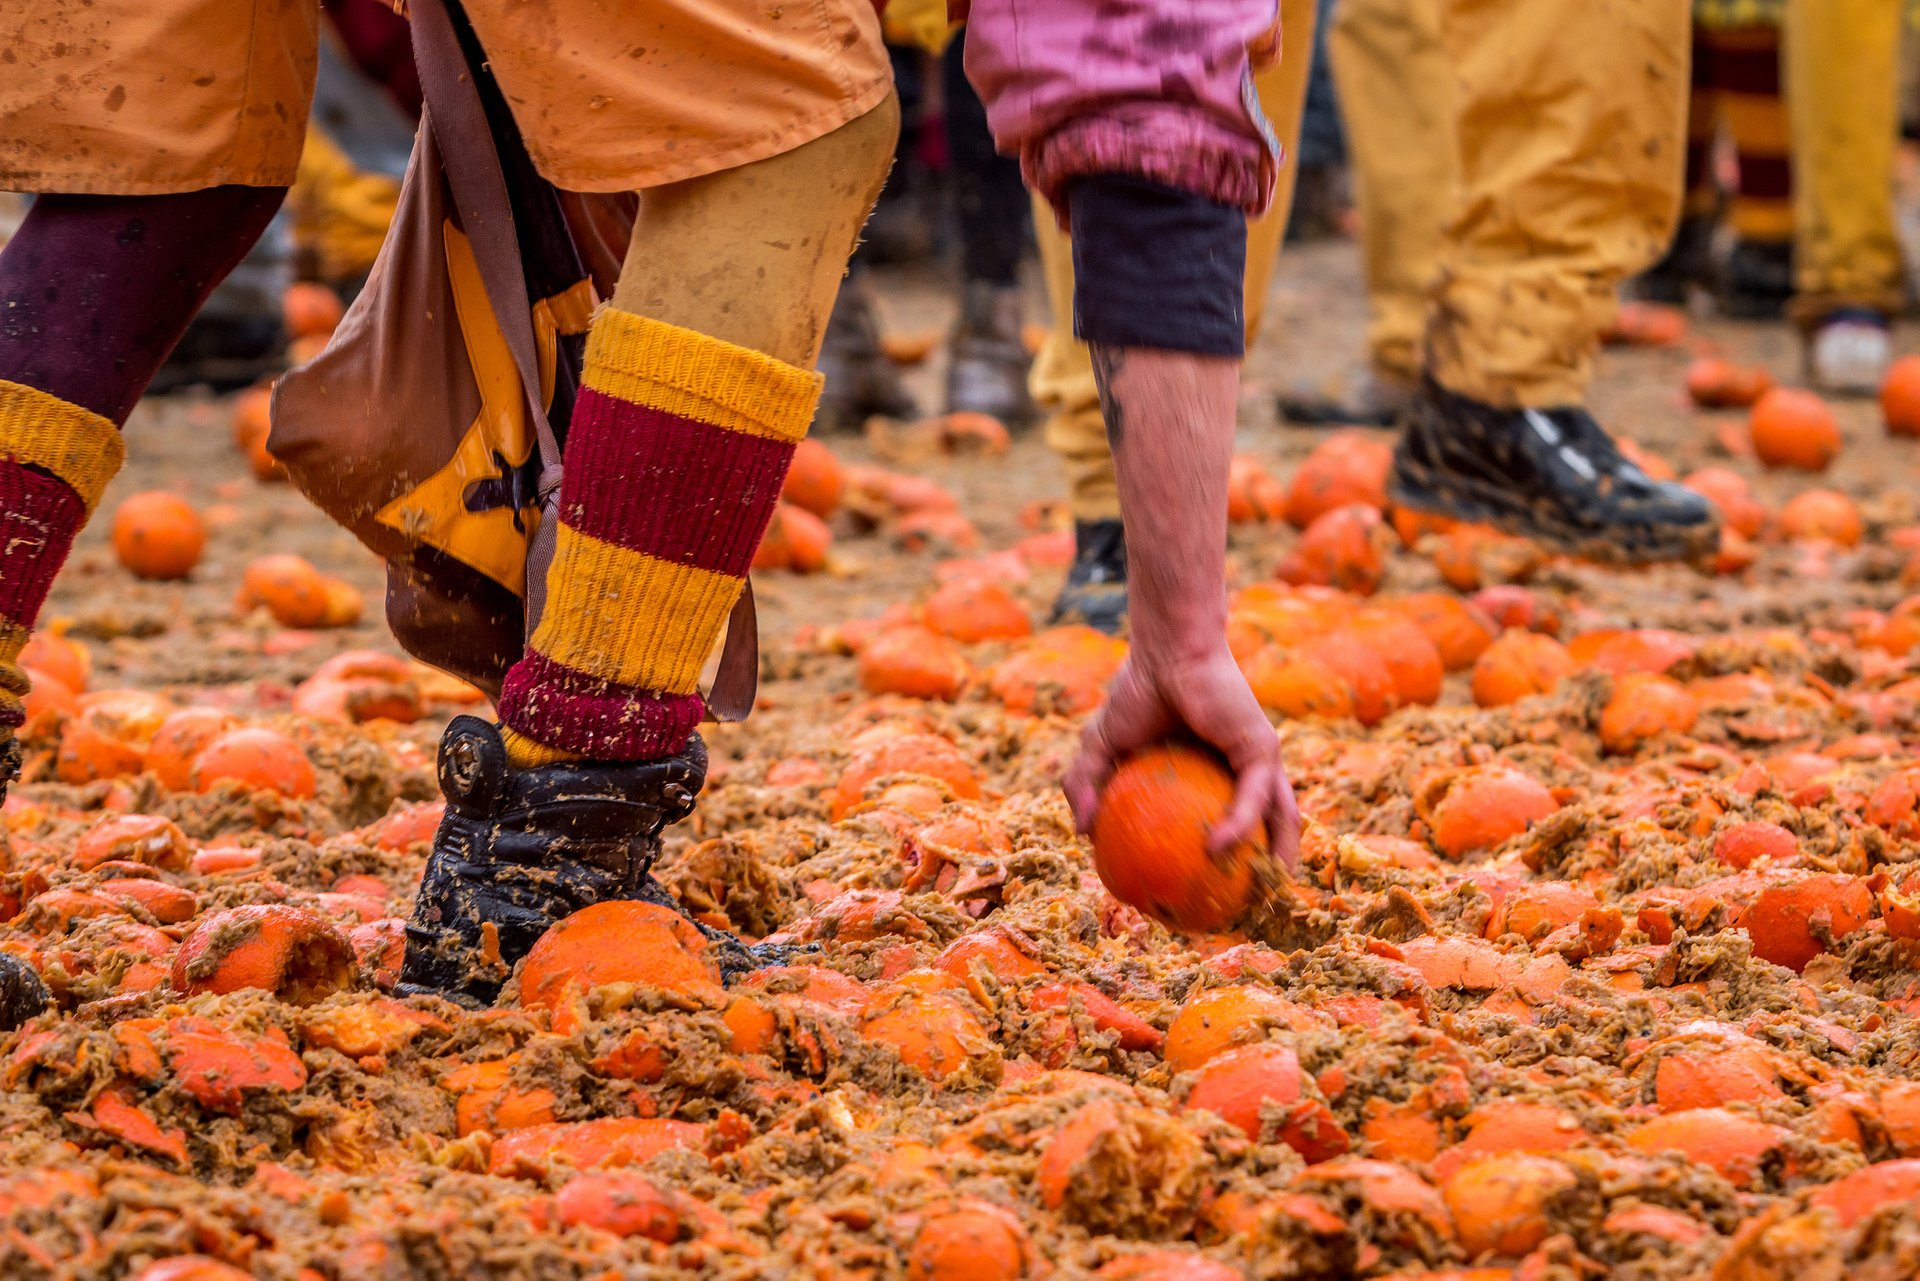 Best time to see Ivrea Battle of the Oranges in Italy 2020